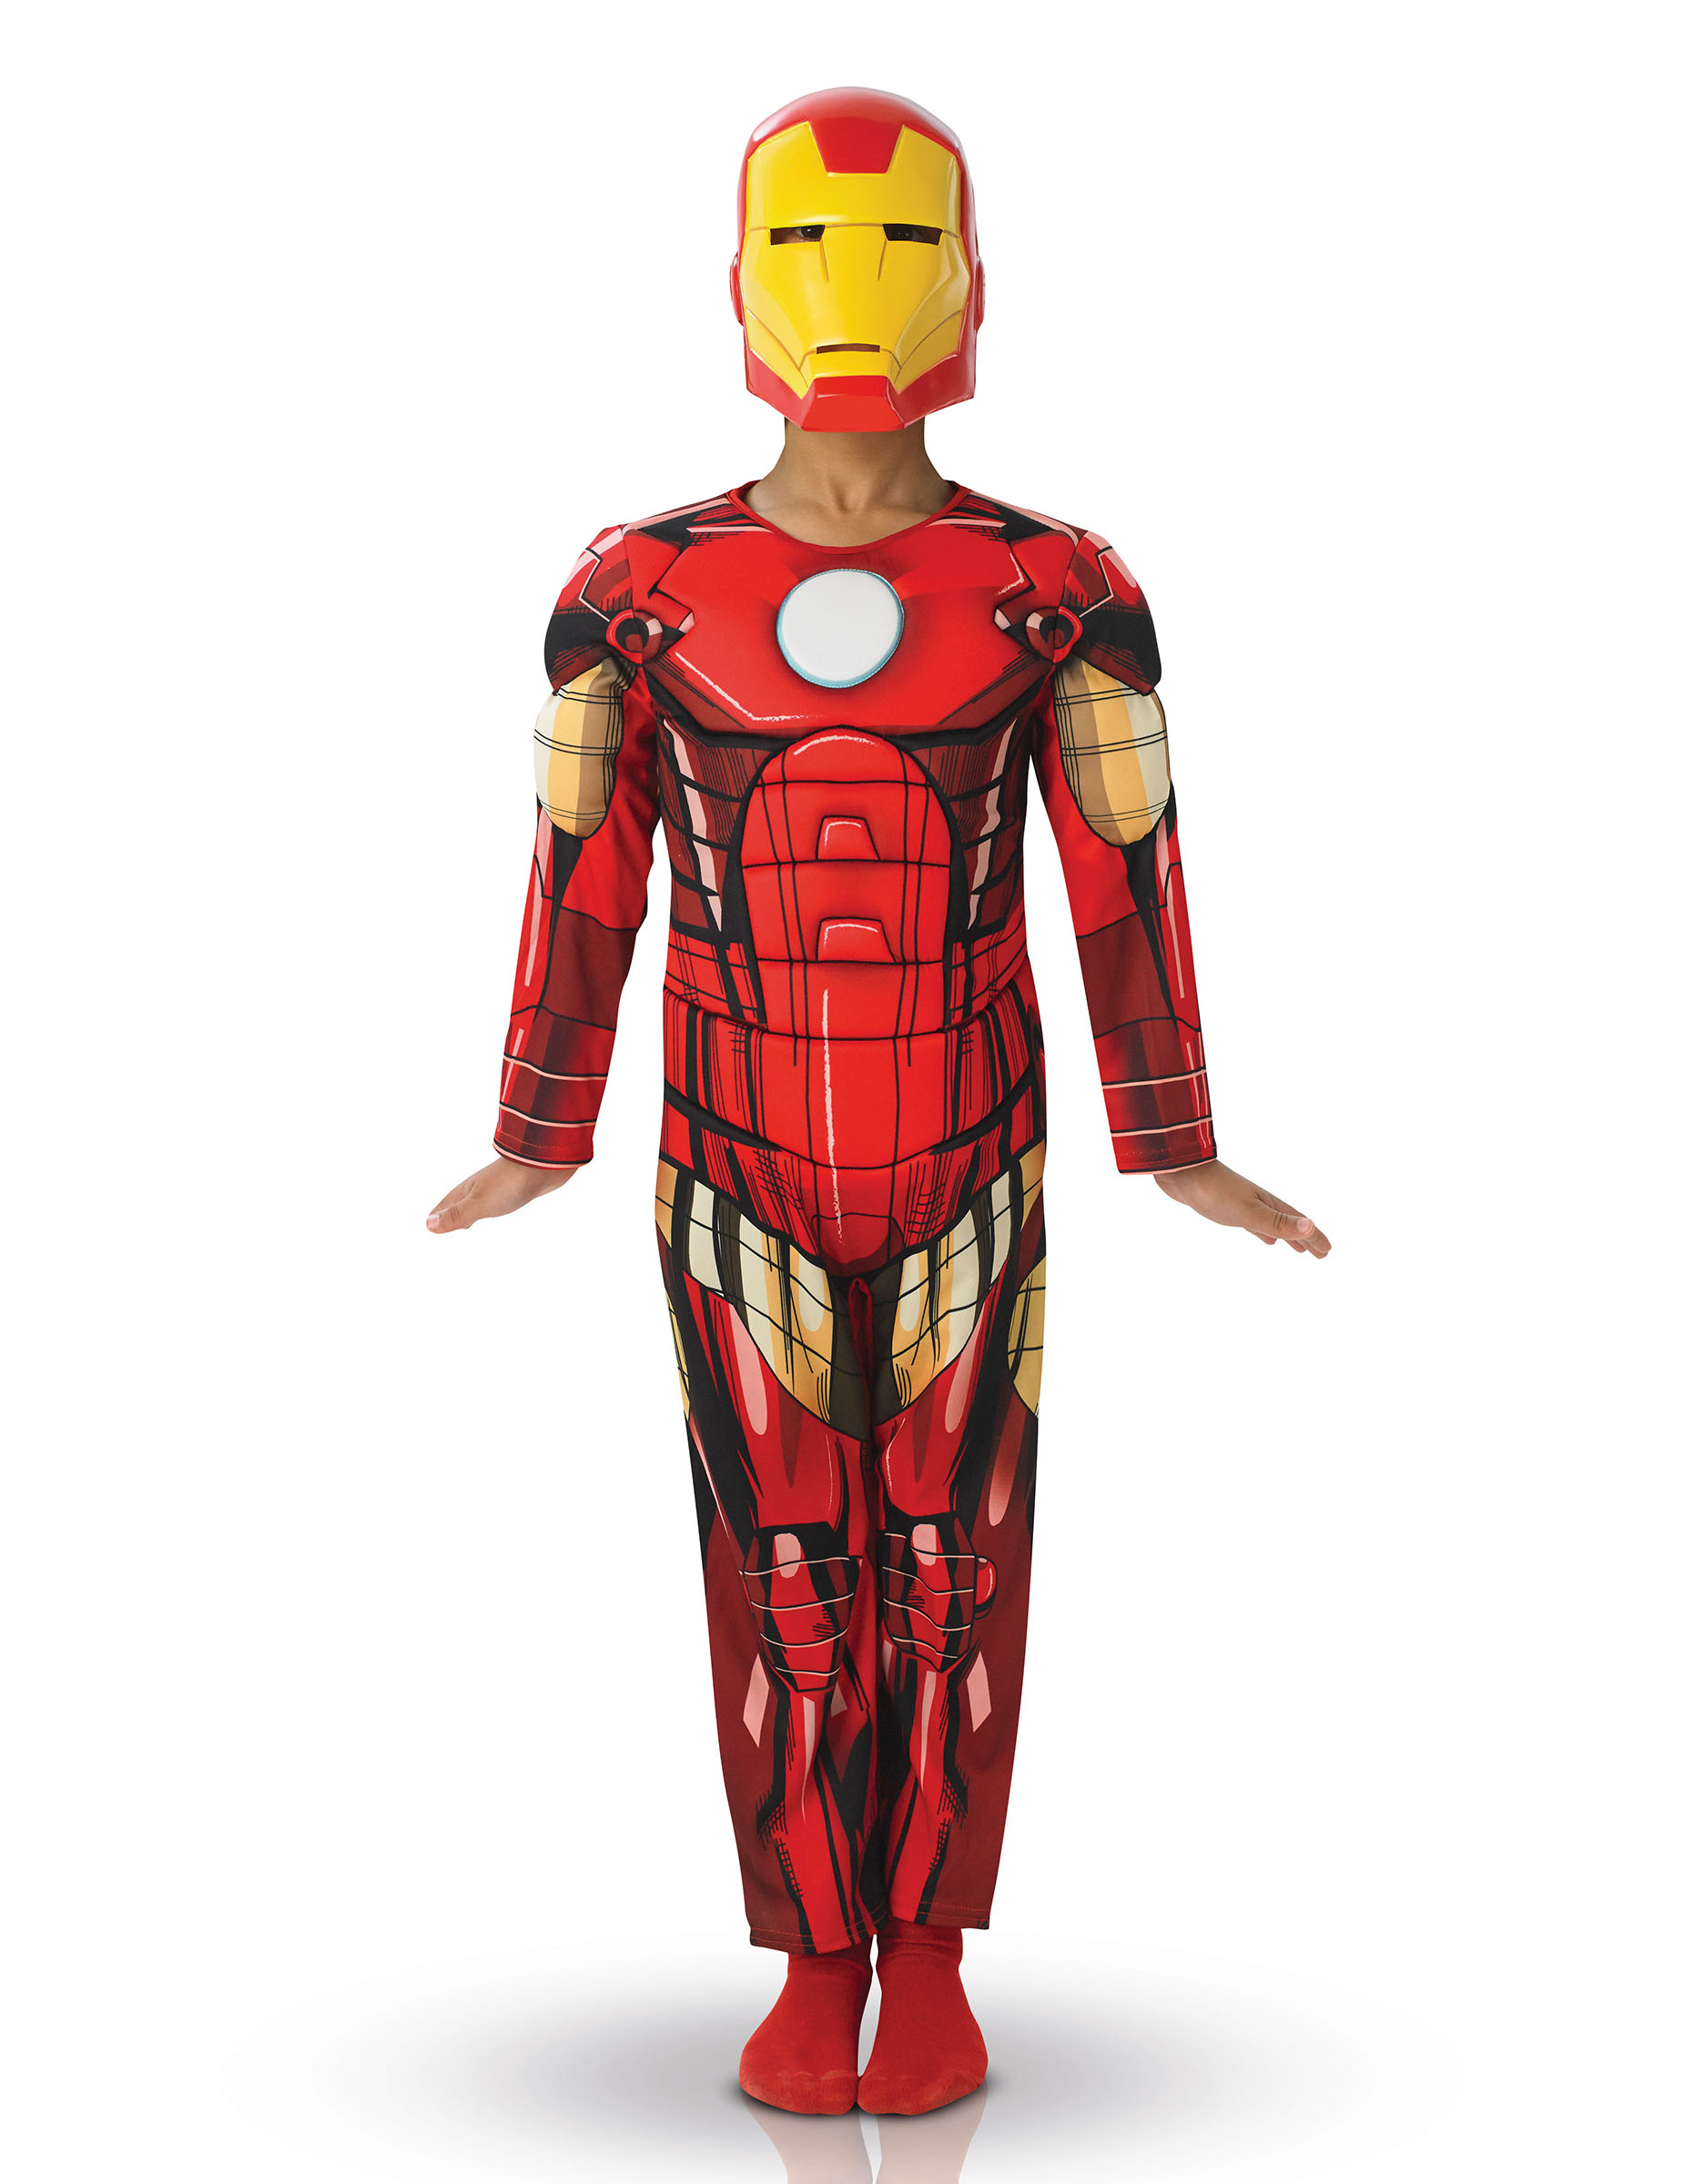 d guisement luxe iron man avengers assemble enfant d coration anniversaire et f tes th me. Black Bedroom Furniture Sets. Home Design Ideas